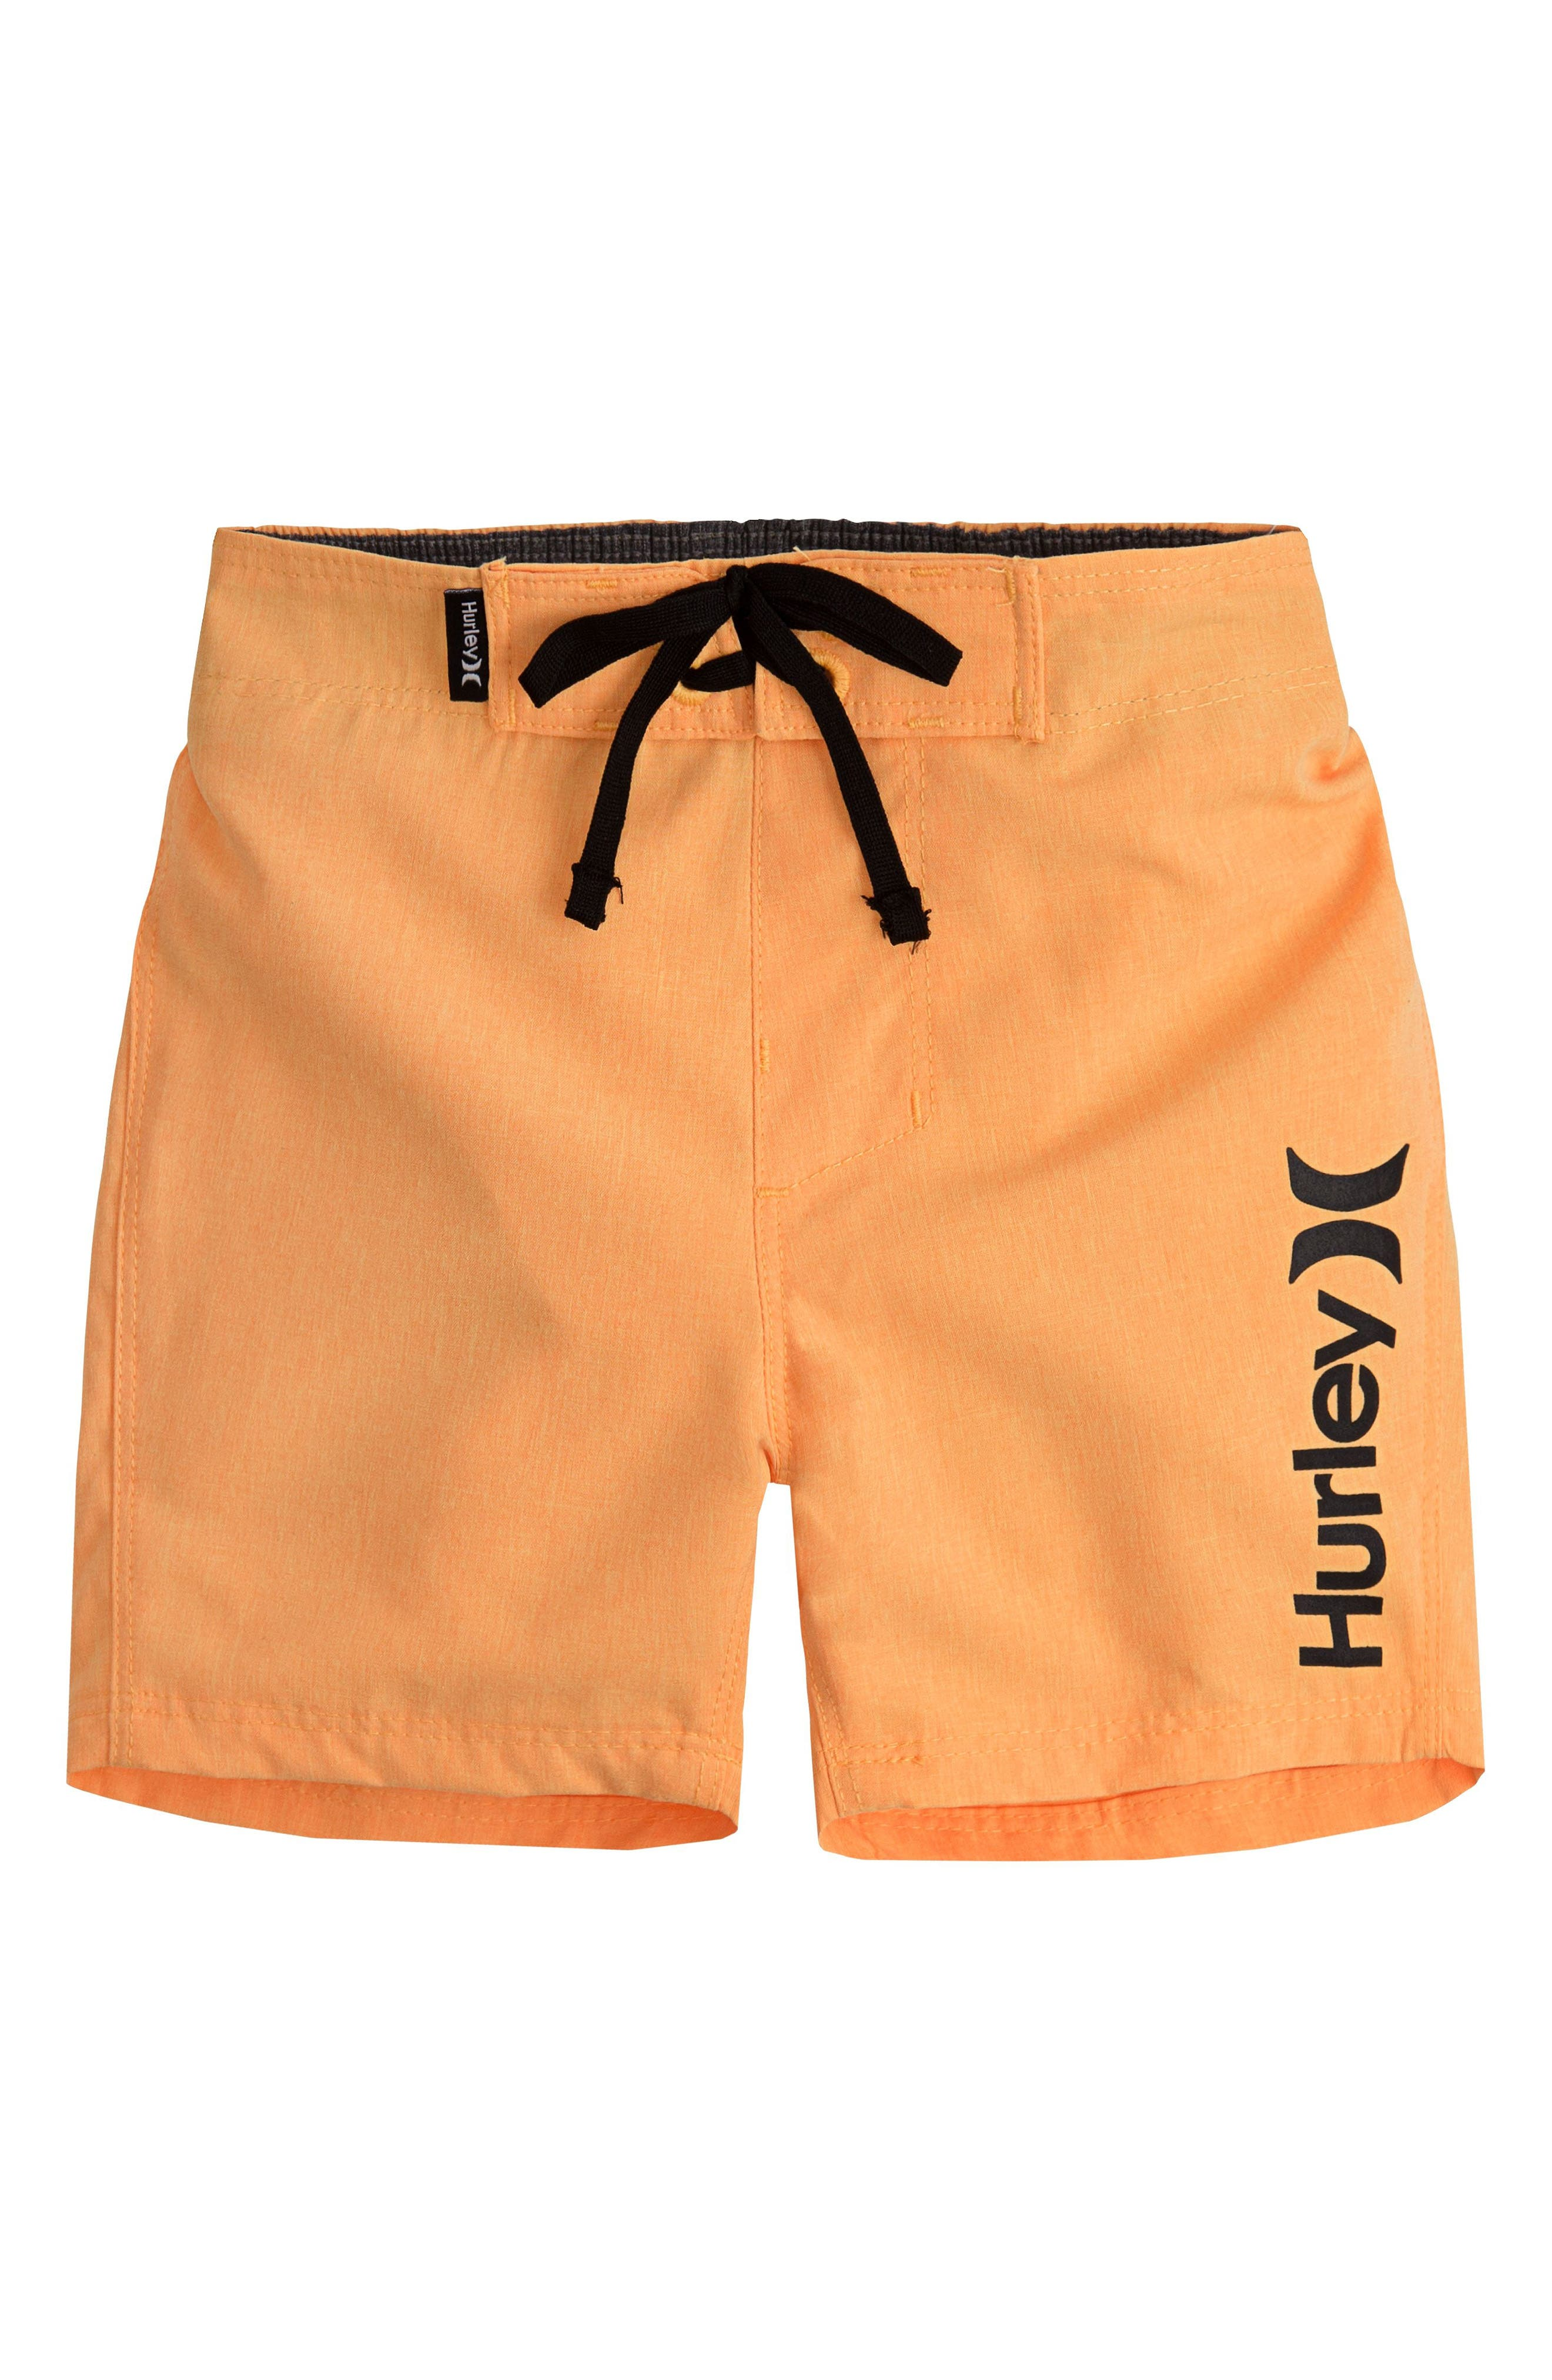 Heathered One & Only Board Shorts,                         Main,                         color, Laser Orange Heather